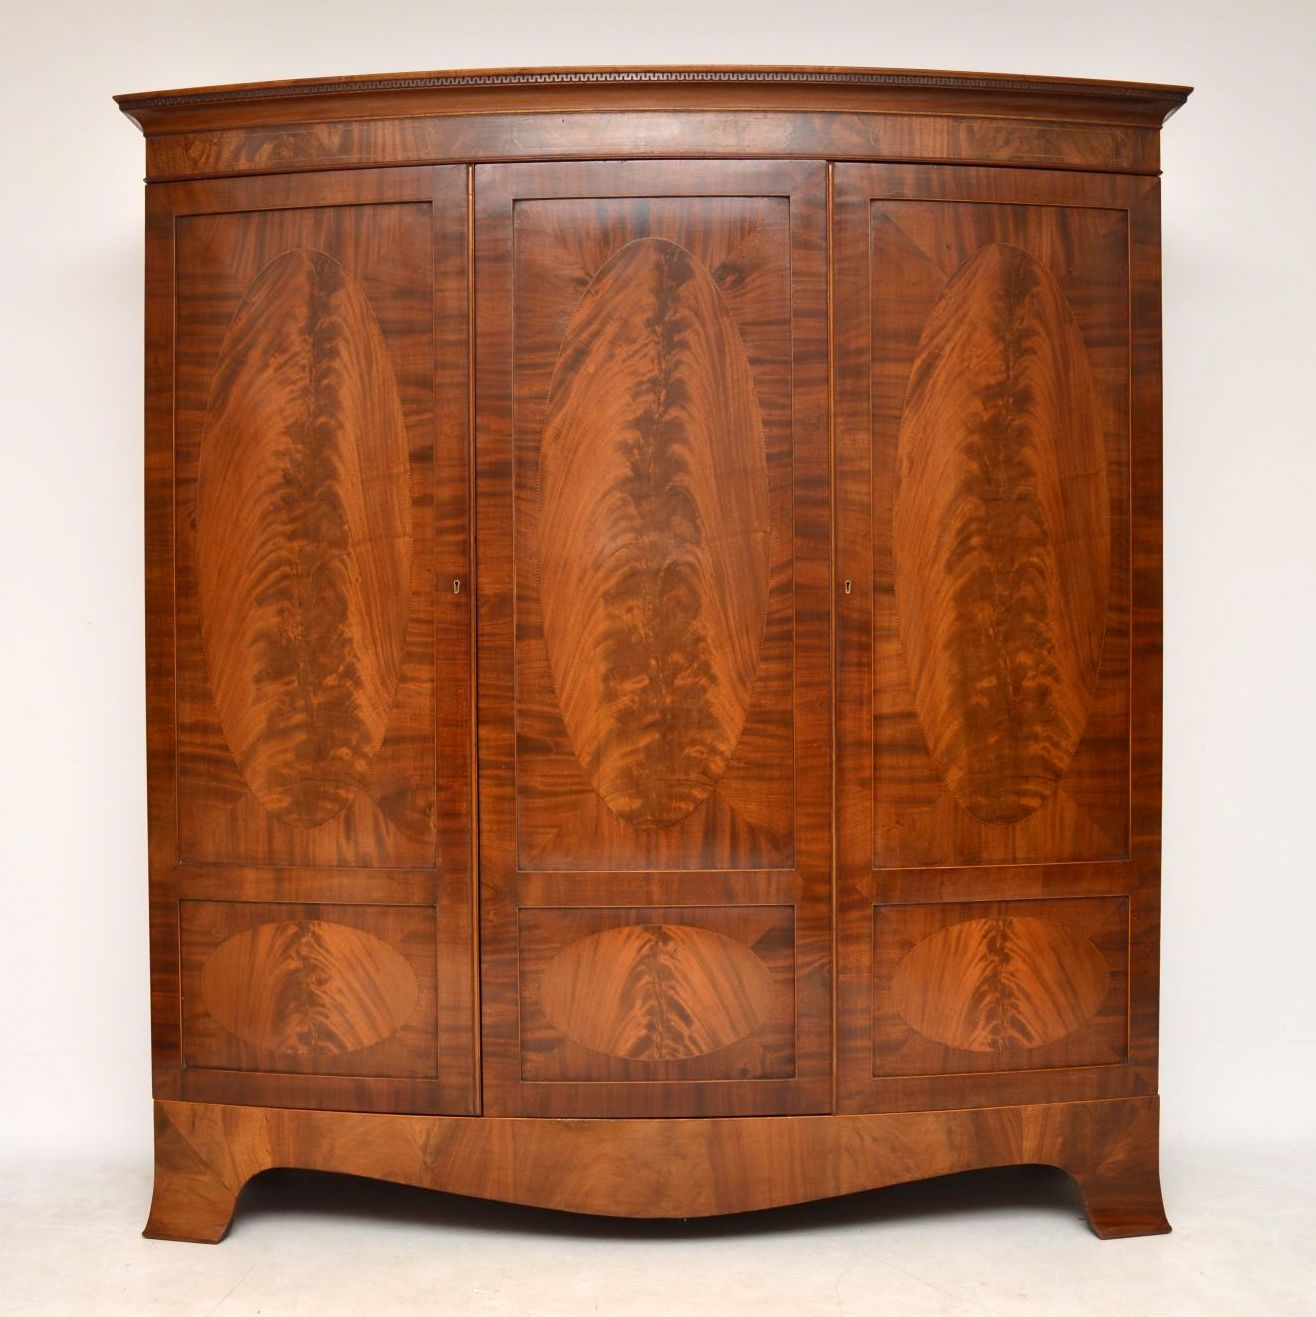 Large Antique Edwardian Inlaid Mahogany Wardrobe